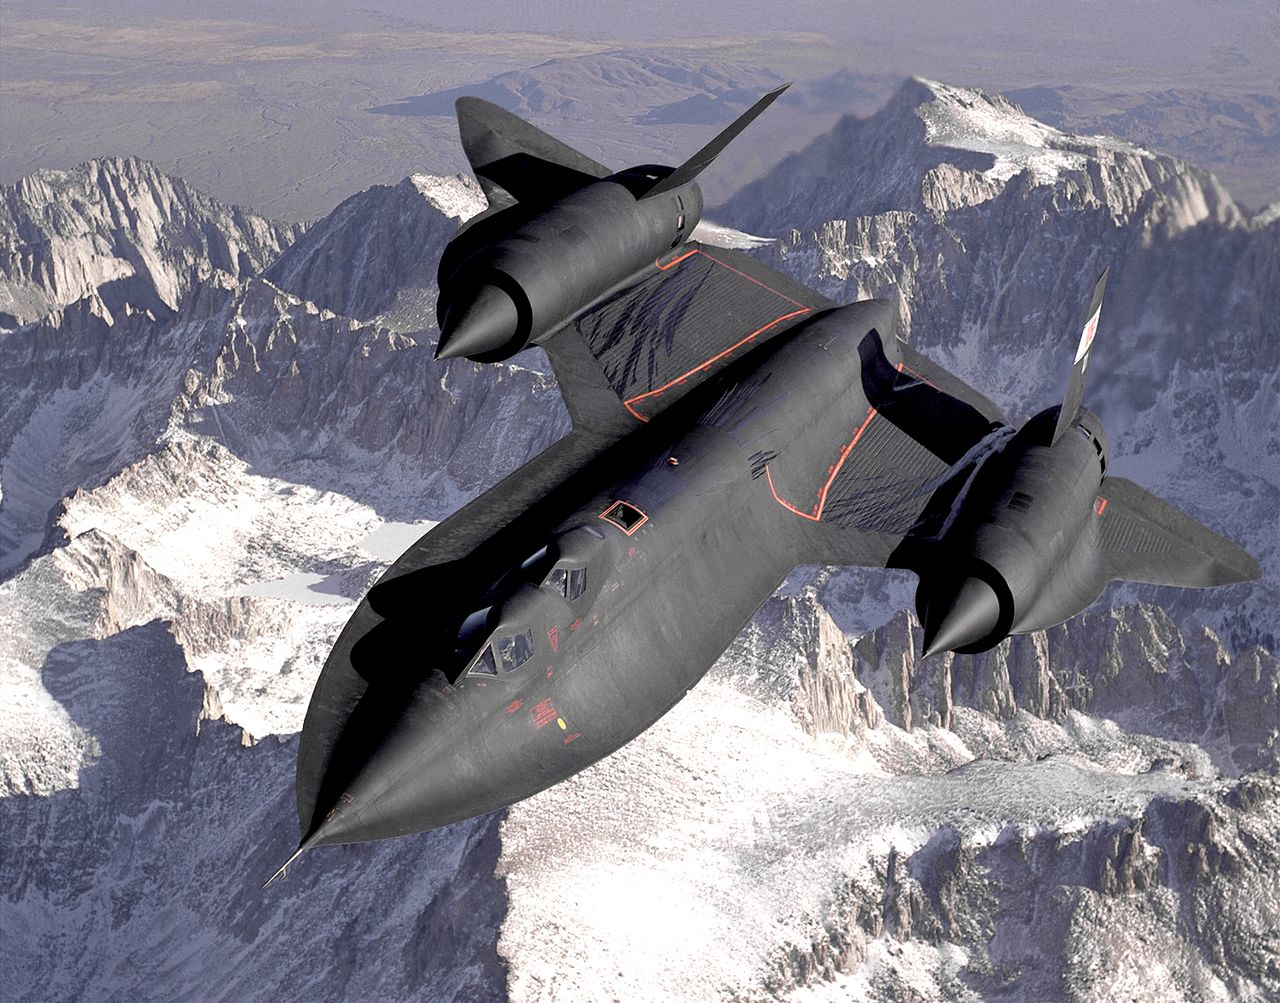 Lockheed SR-71 Blackbird in flight, note the streaks from fuel leaking out of the wings. (Source: NASA)